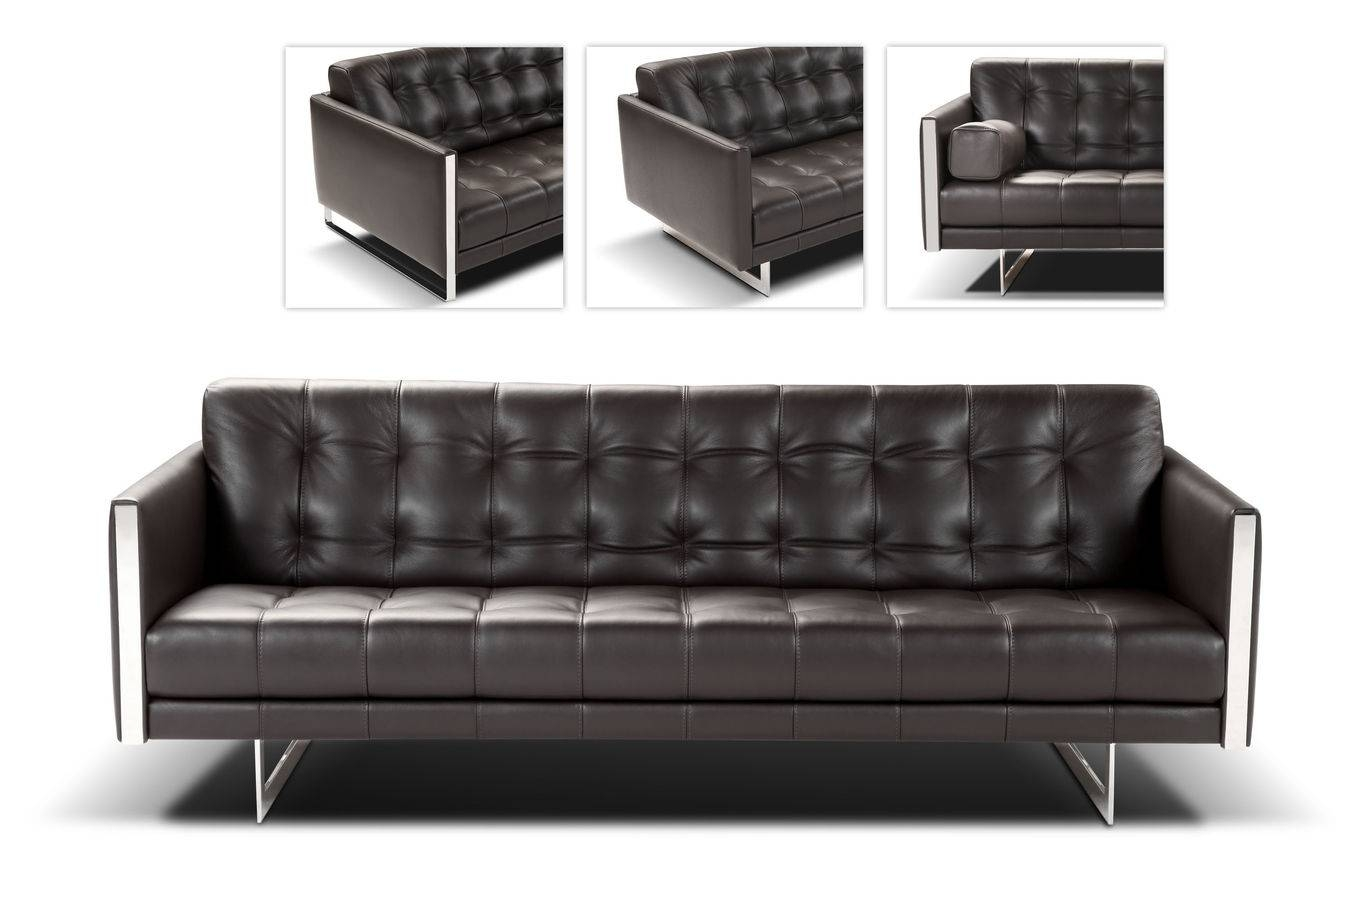 Amazing Modern Leather Sofa 97 On Sofas And Couches Ideas With inside Contemporary Brown Leather Sofas (Image 3 of 15)